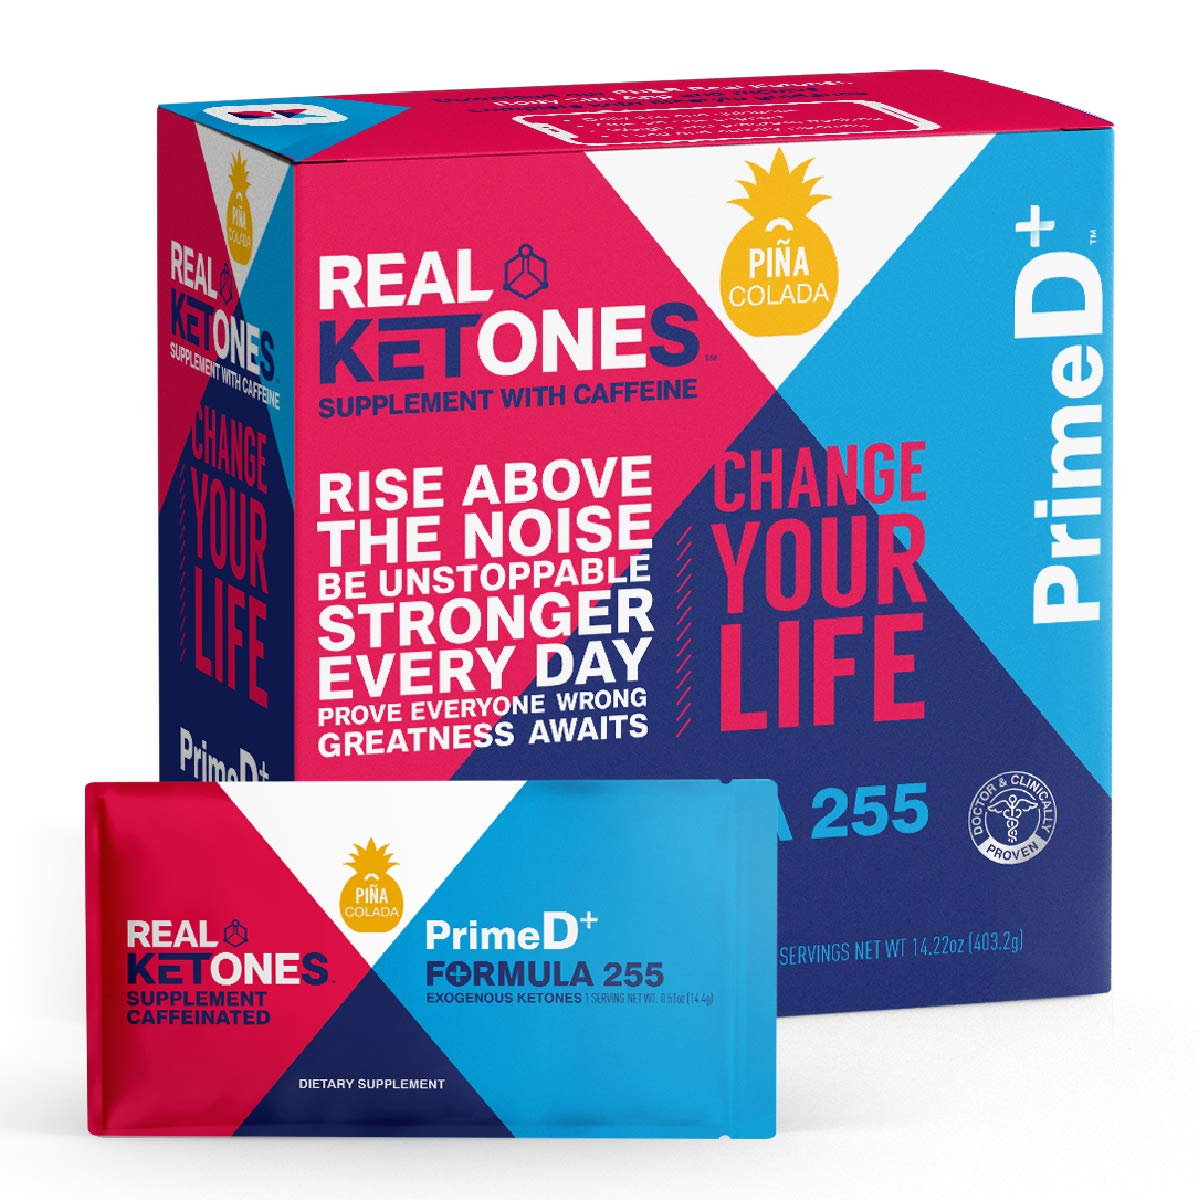 Real Ketones Prime D+ Pina Colada Caffeinated Exogenous Ketone Supplement with BHB and MCT Combo for Ketone Boost, Energy and Focus by Real Ketones